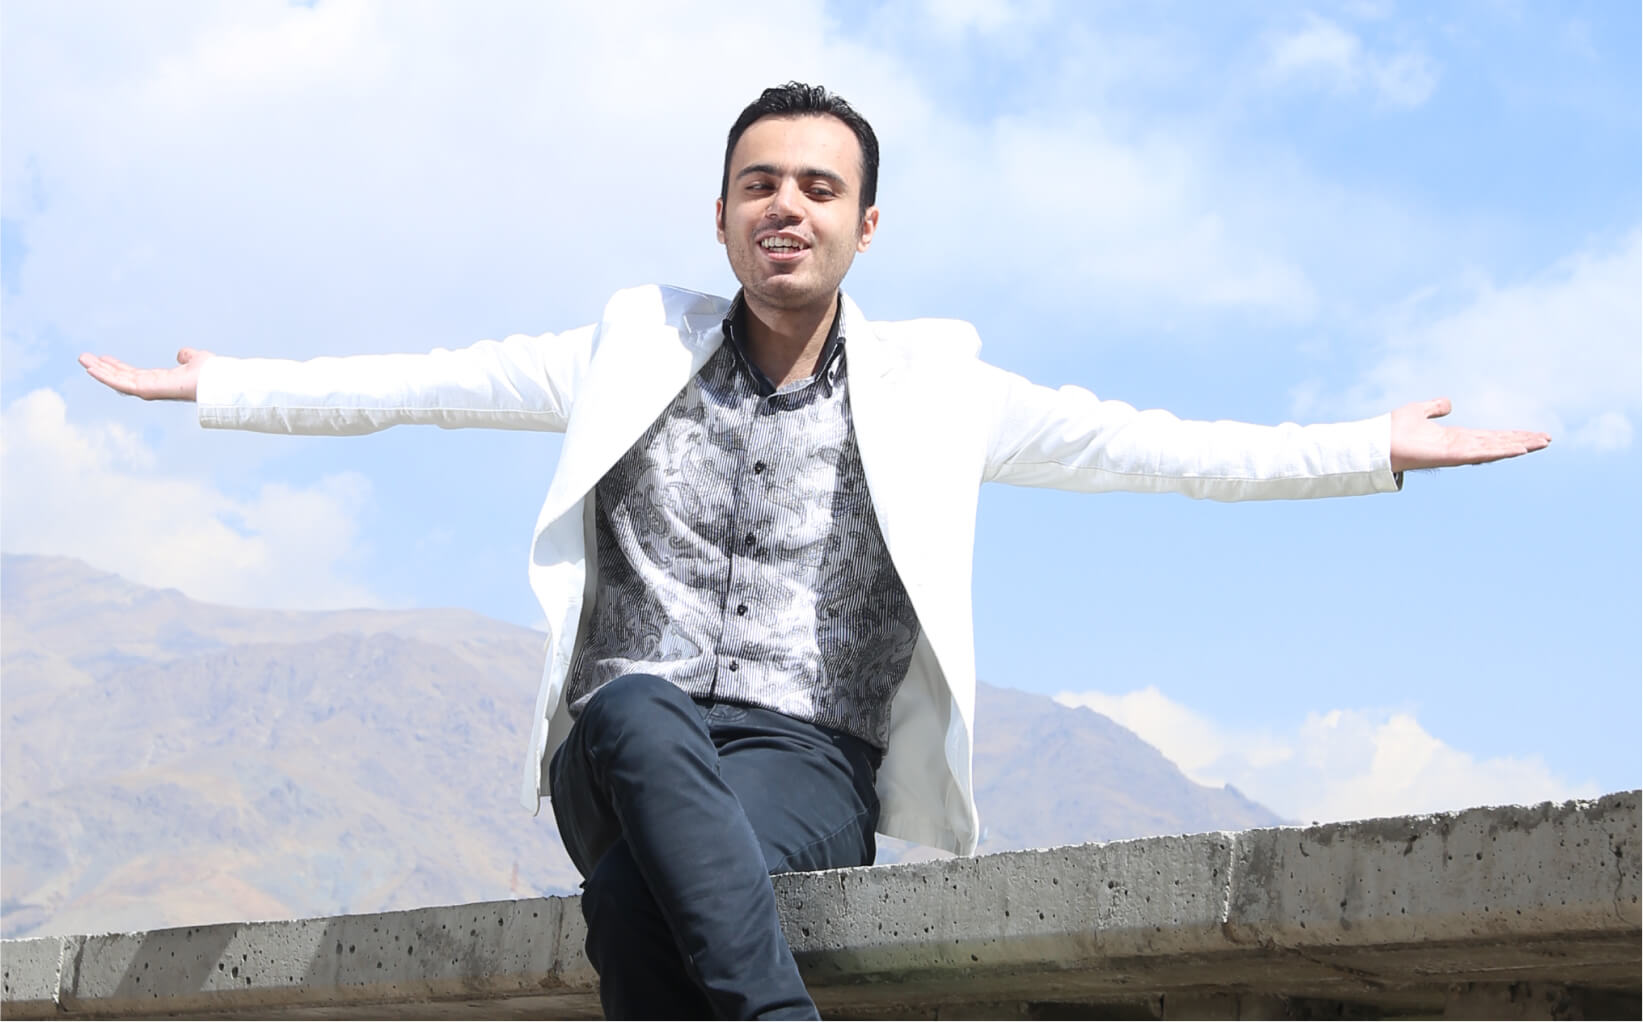 Parham sitting on a concrete wall holding his arms out with mountains in the background. He's wearing a white blazer jacket, a grey patterned shirt and black jeans.